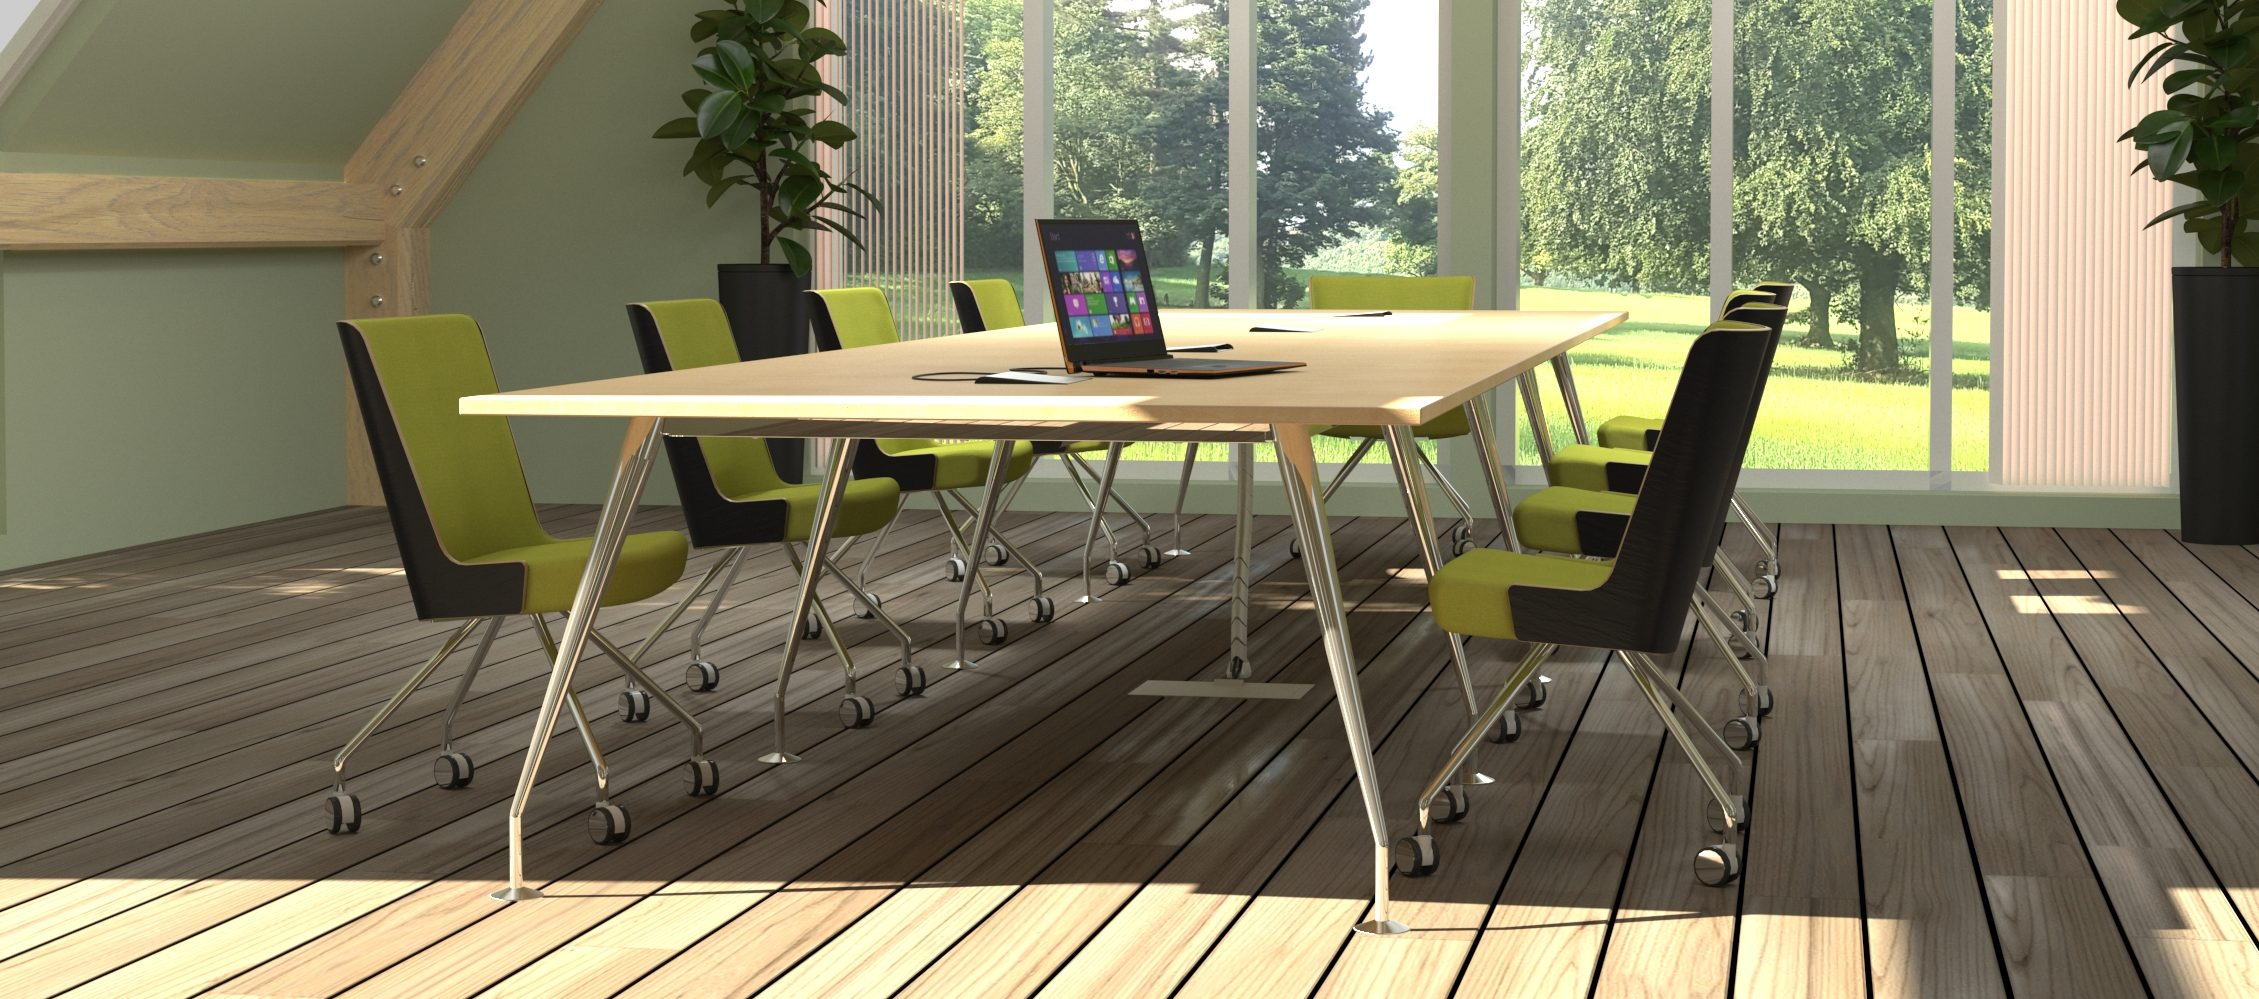 Spire Meeting Table with Heydon Chairs